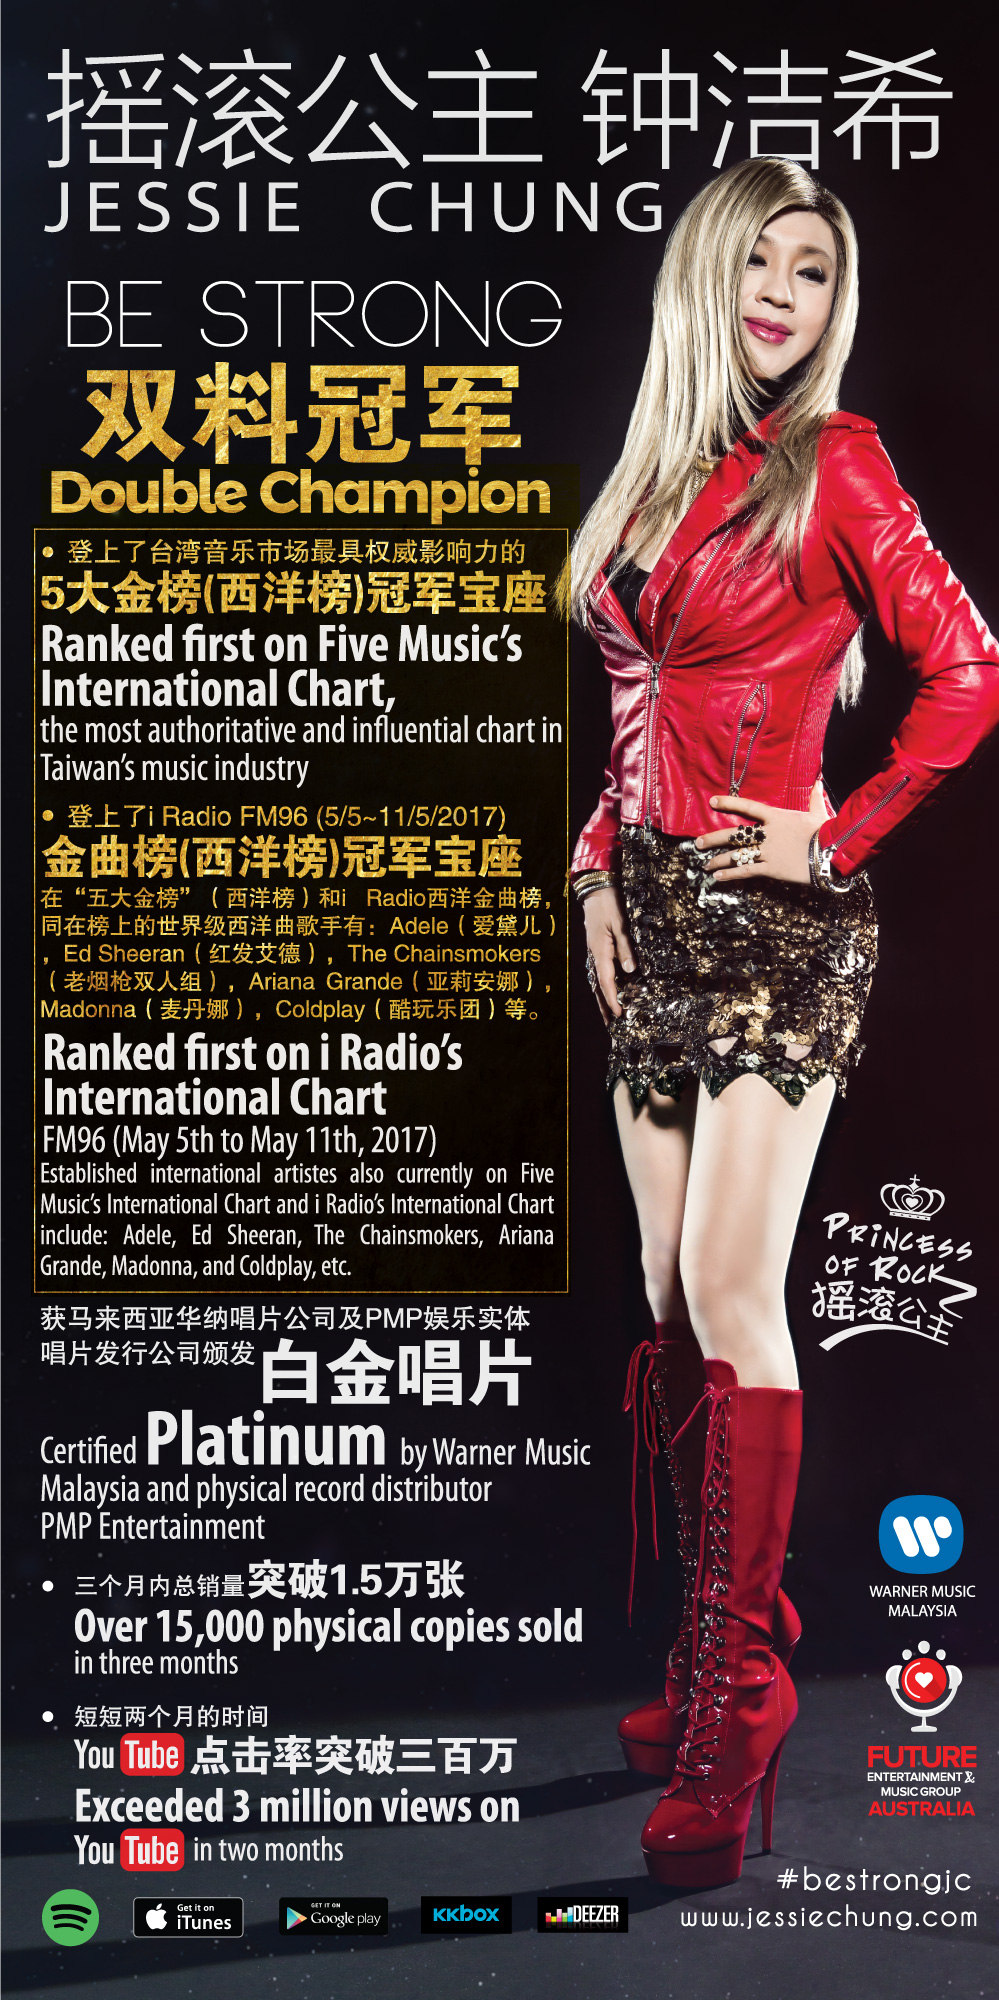 Jessie Chung Scored Double Champion in Charts in Taiwan